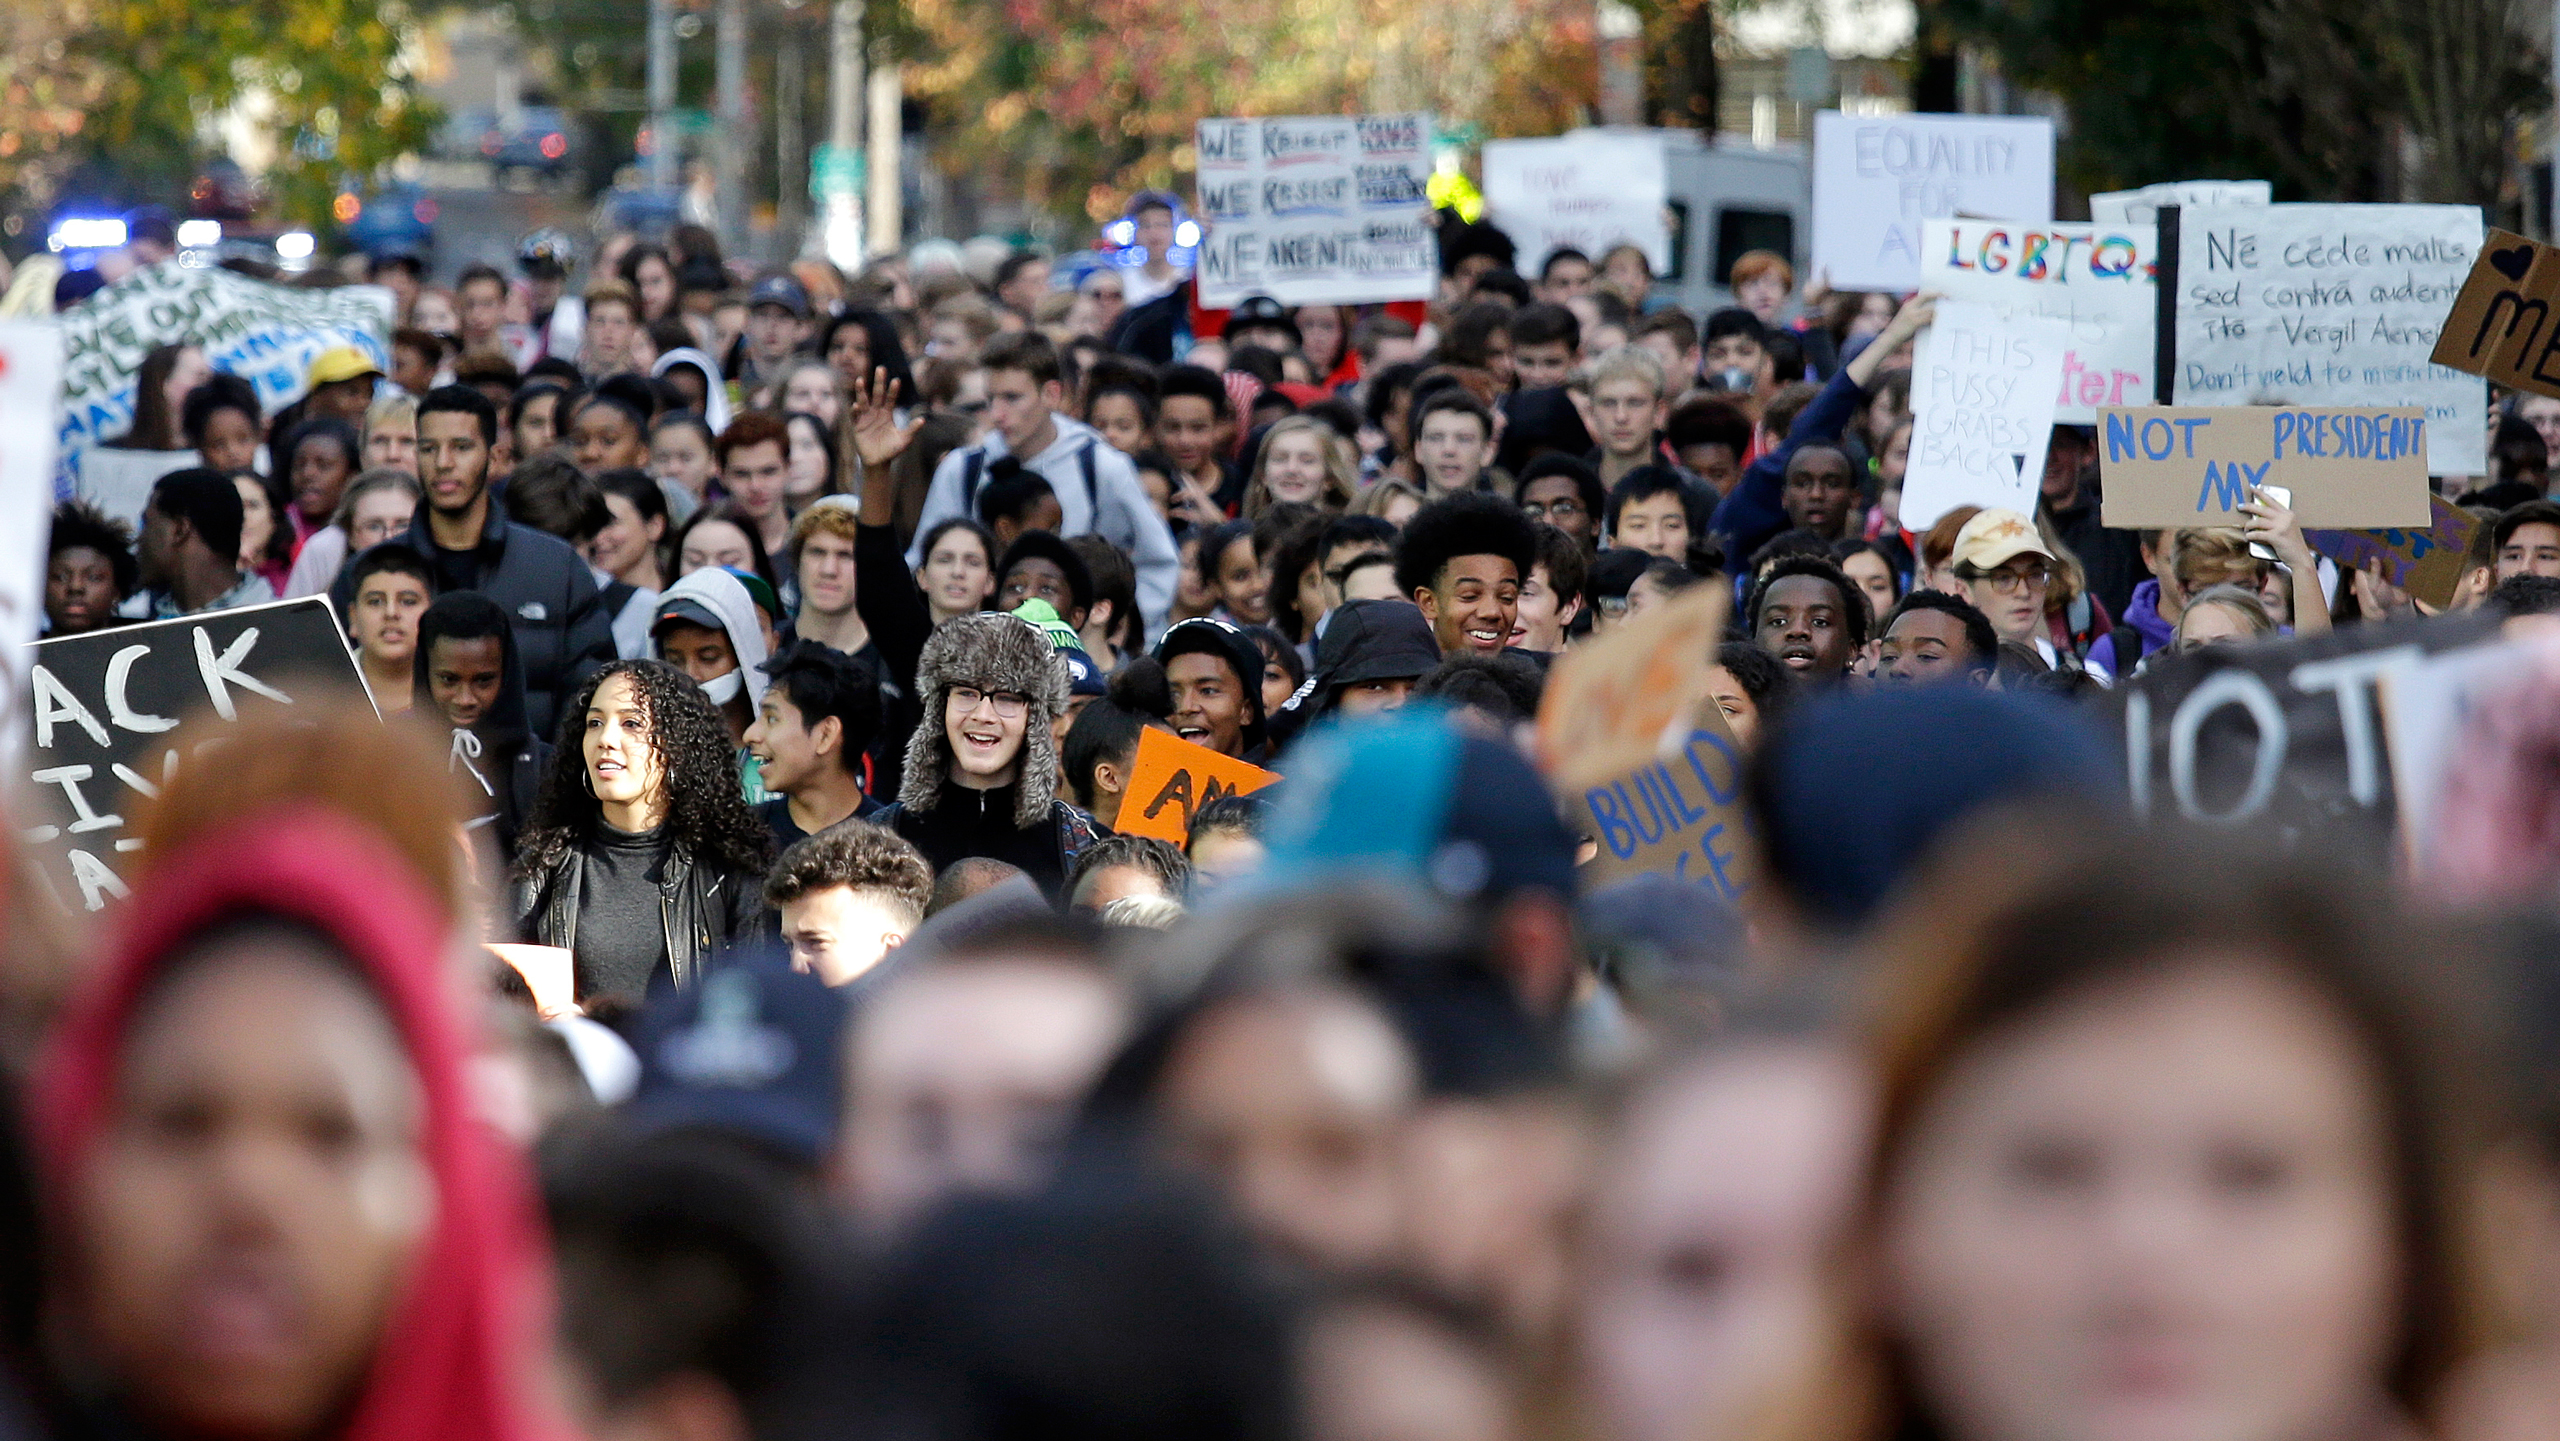 High school students fill a street as they head to join others during a walkout to protest the election of Donald Trump as president in Seattle on Nov. 14, 2016.